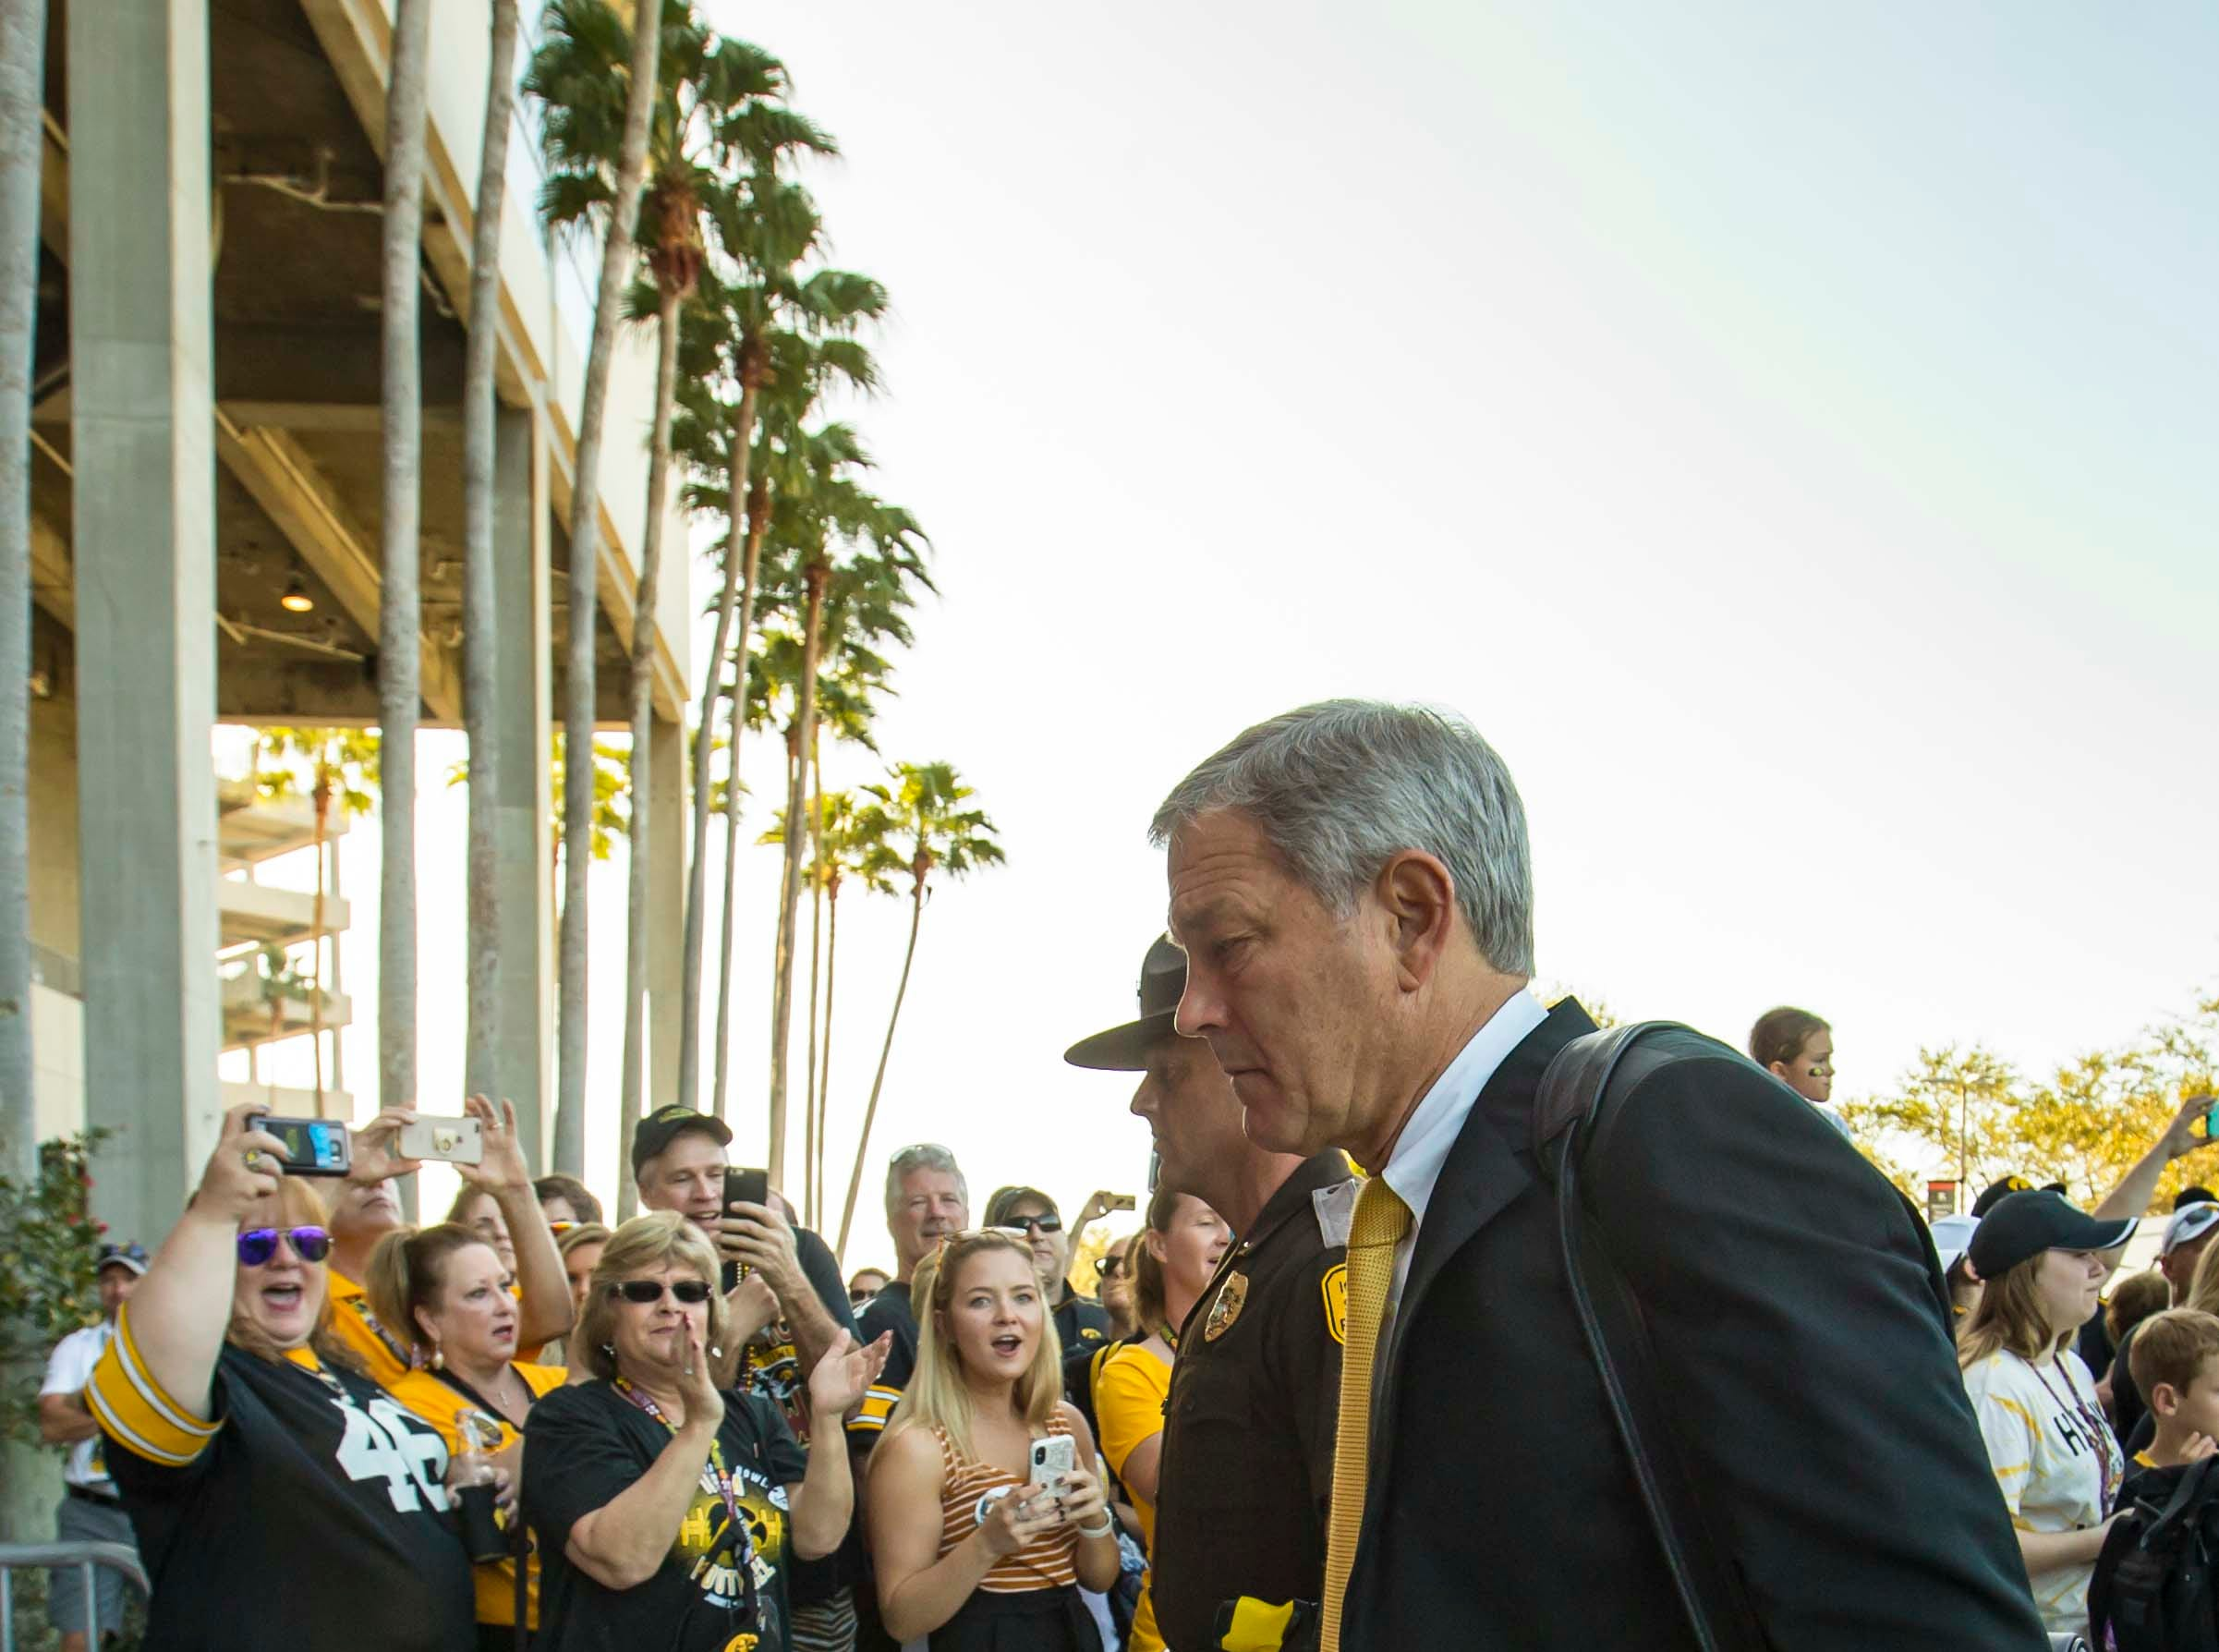 Coach Kirk Ferentz arrives with Iowa football team at Raymond James Stadium Jan. 1, 2019 in Tampa, Florida. Iowa takes on Mississippi State in the Outback Bowl.